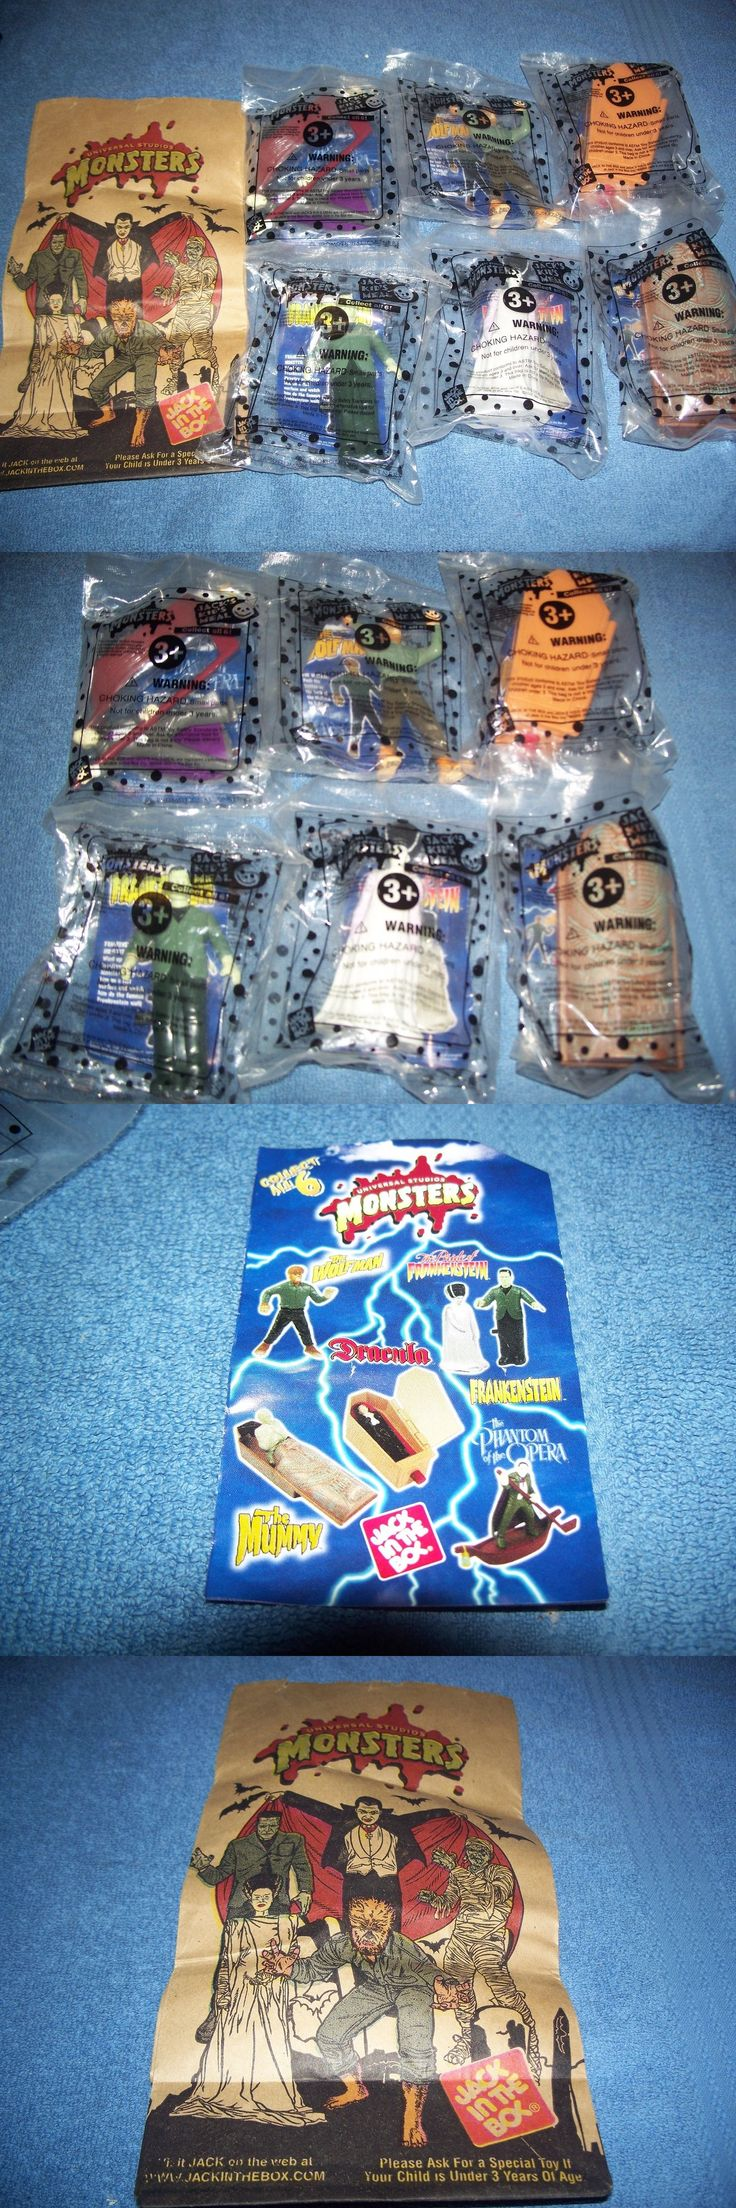 Monster 1192: Jack In The Box Monsters Set 6 Figures Frankenstein Wolfman Dracula Mummy And Bag -> BUY IT NOW ONLY: $100 on eBay!